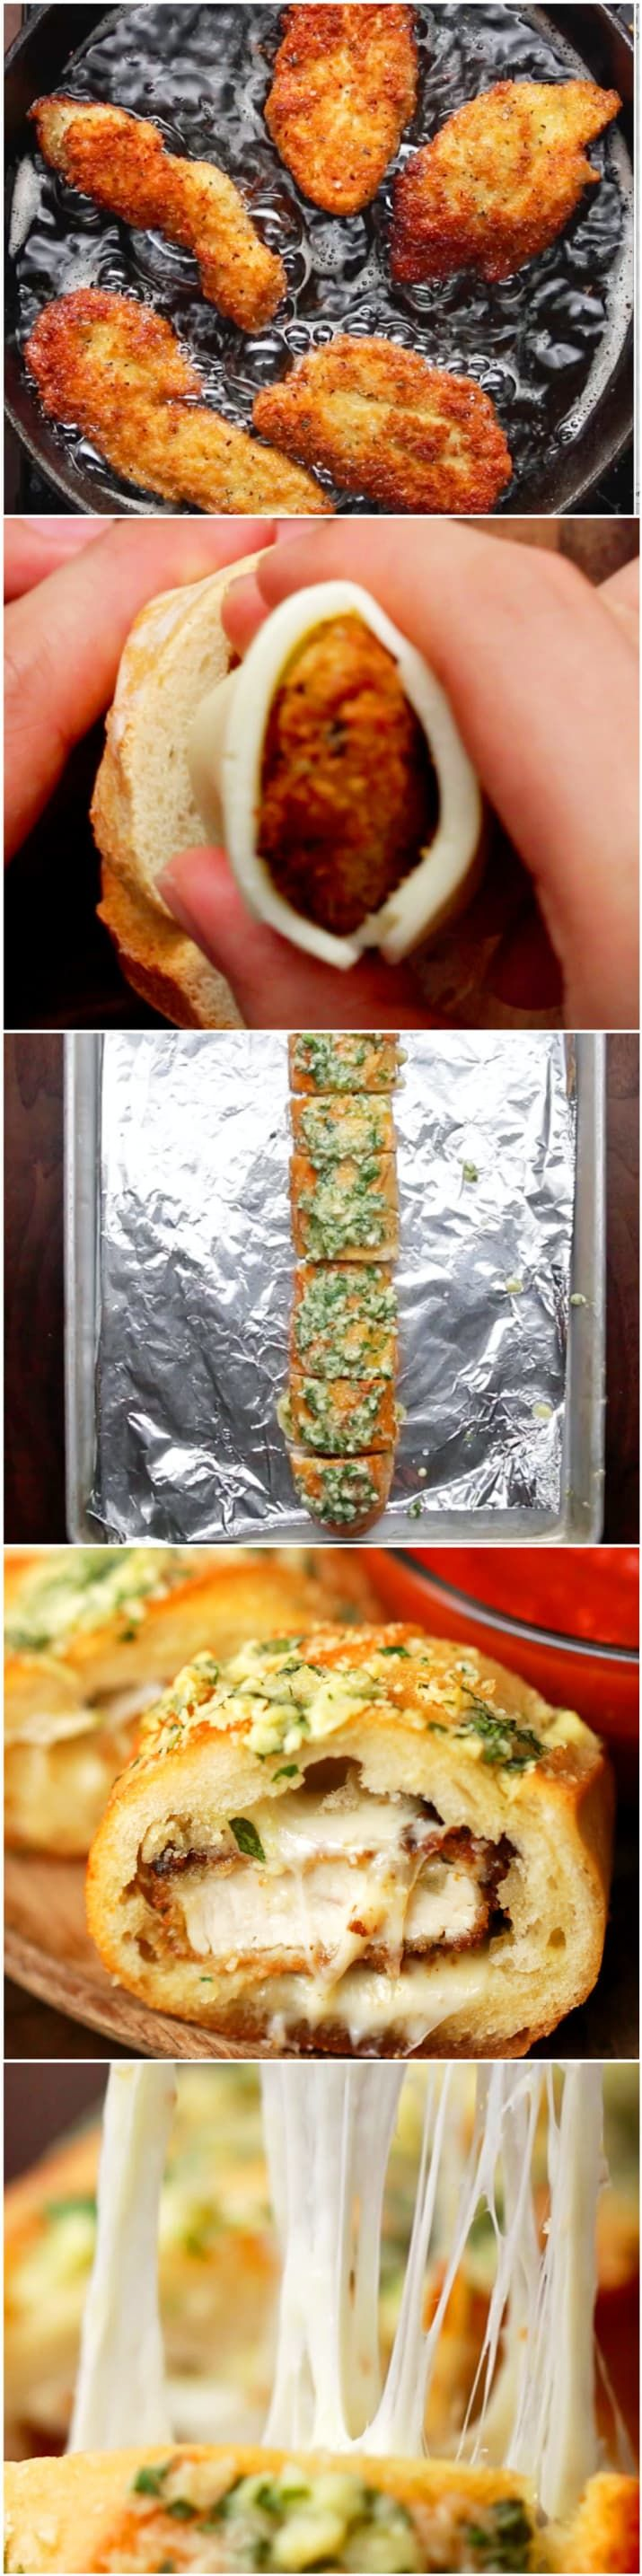 Your Taste Buds Are About To Scream With Happiness With This Chicken Parmesan Garlic Bread